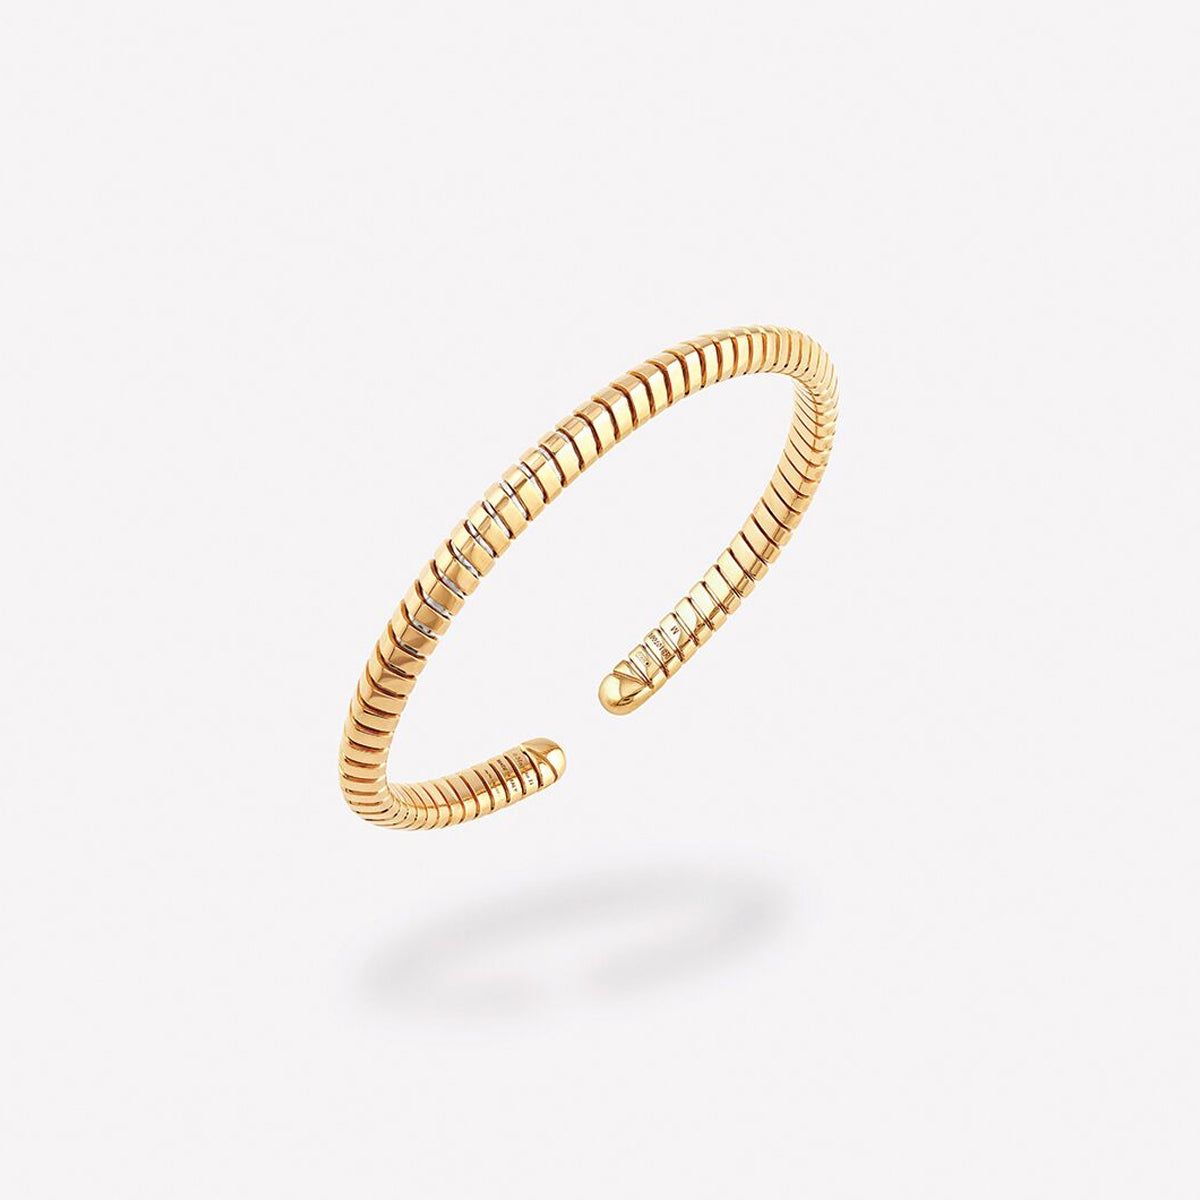 marinab.com, Trisolina Bangle